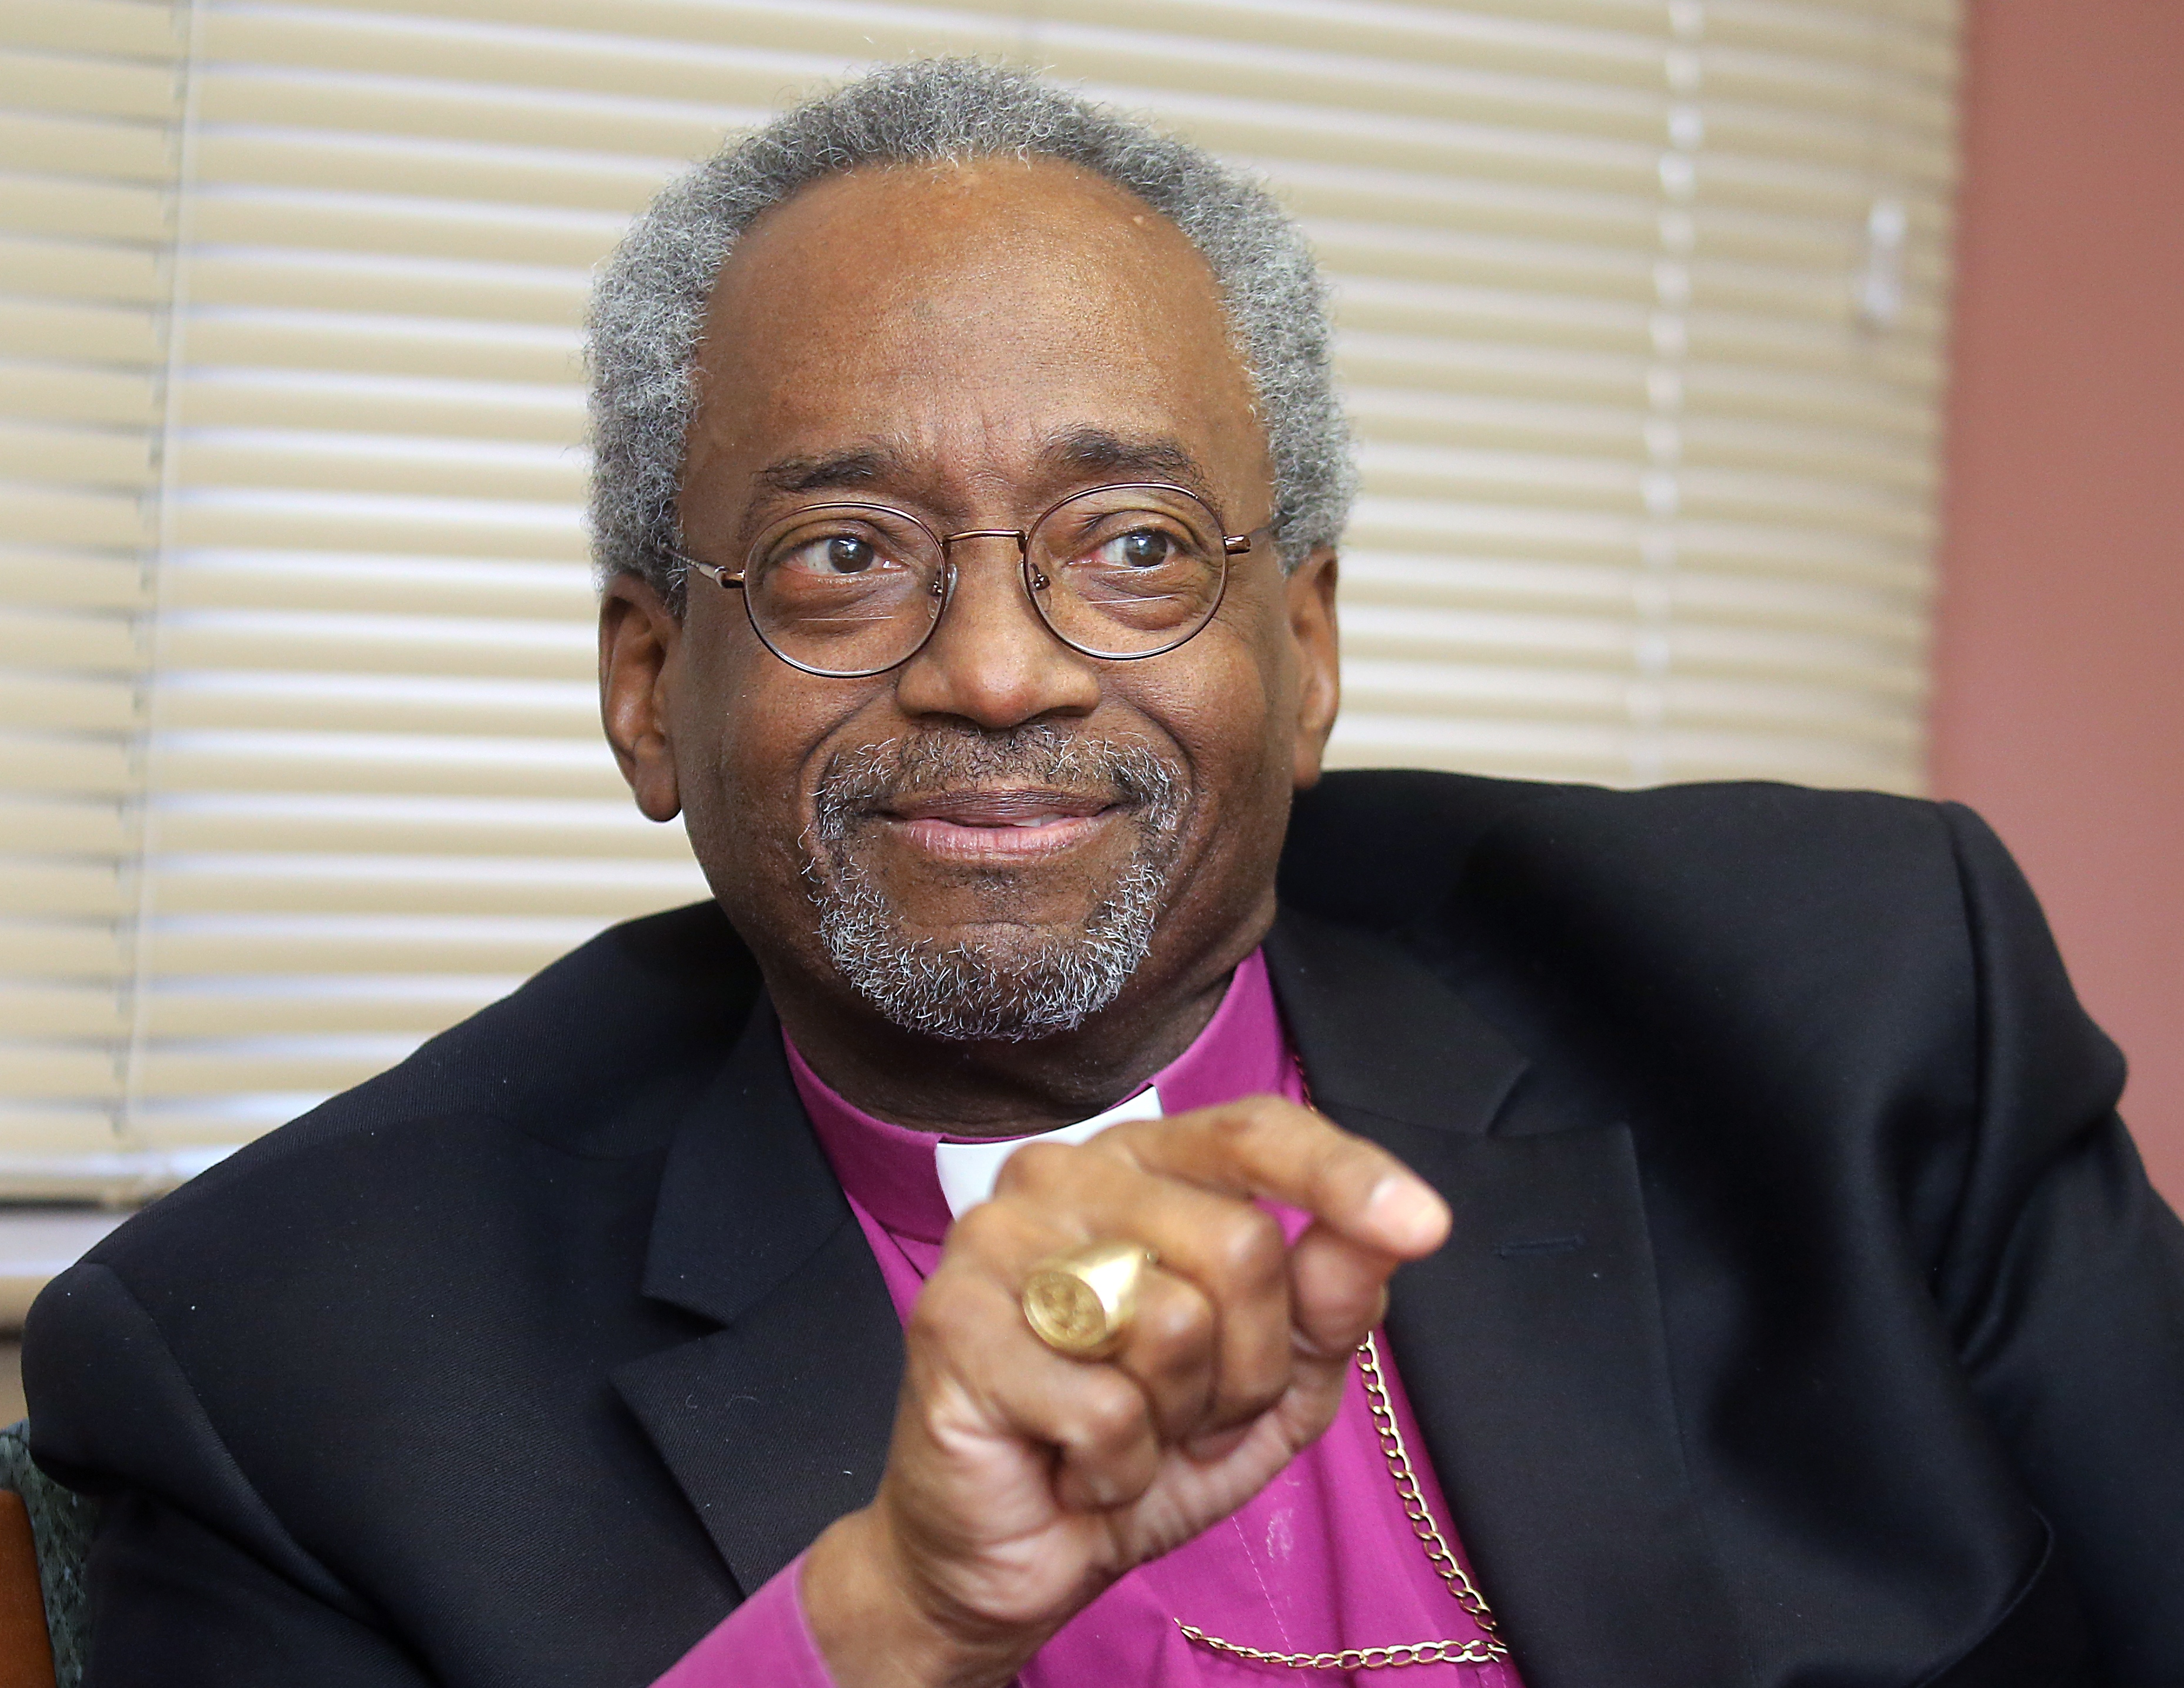 Bishop Michael Curry, head of the Episcopal Church in America, is in the Buffalo area this weekend. (John Hickey/Buffalo News)